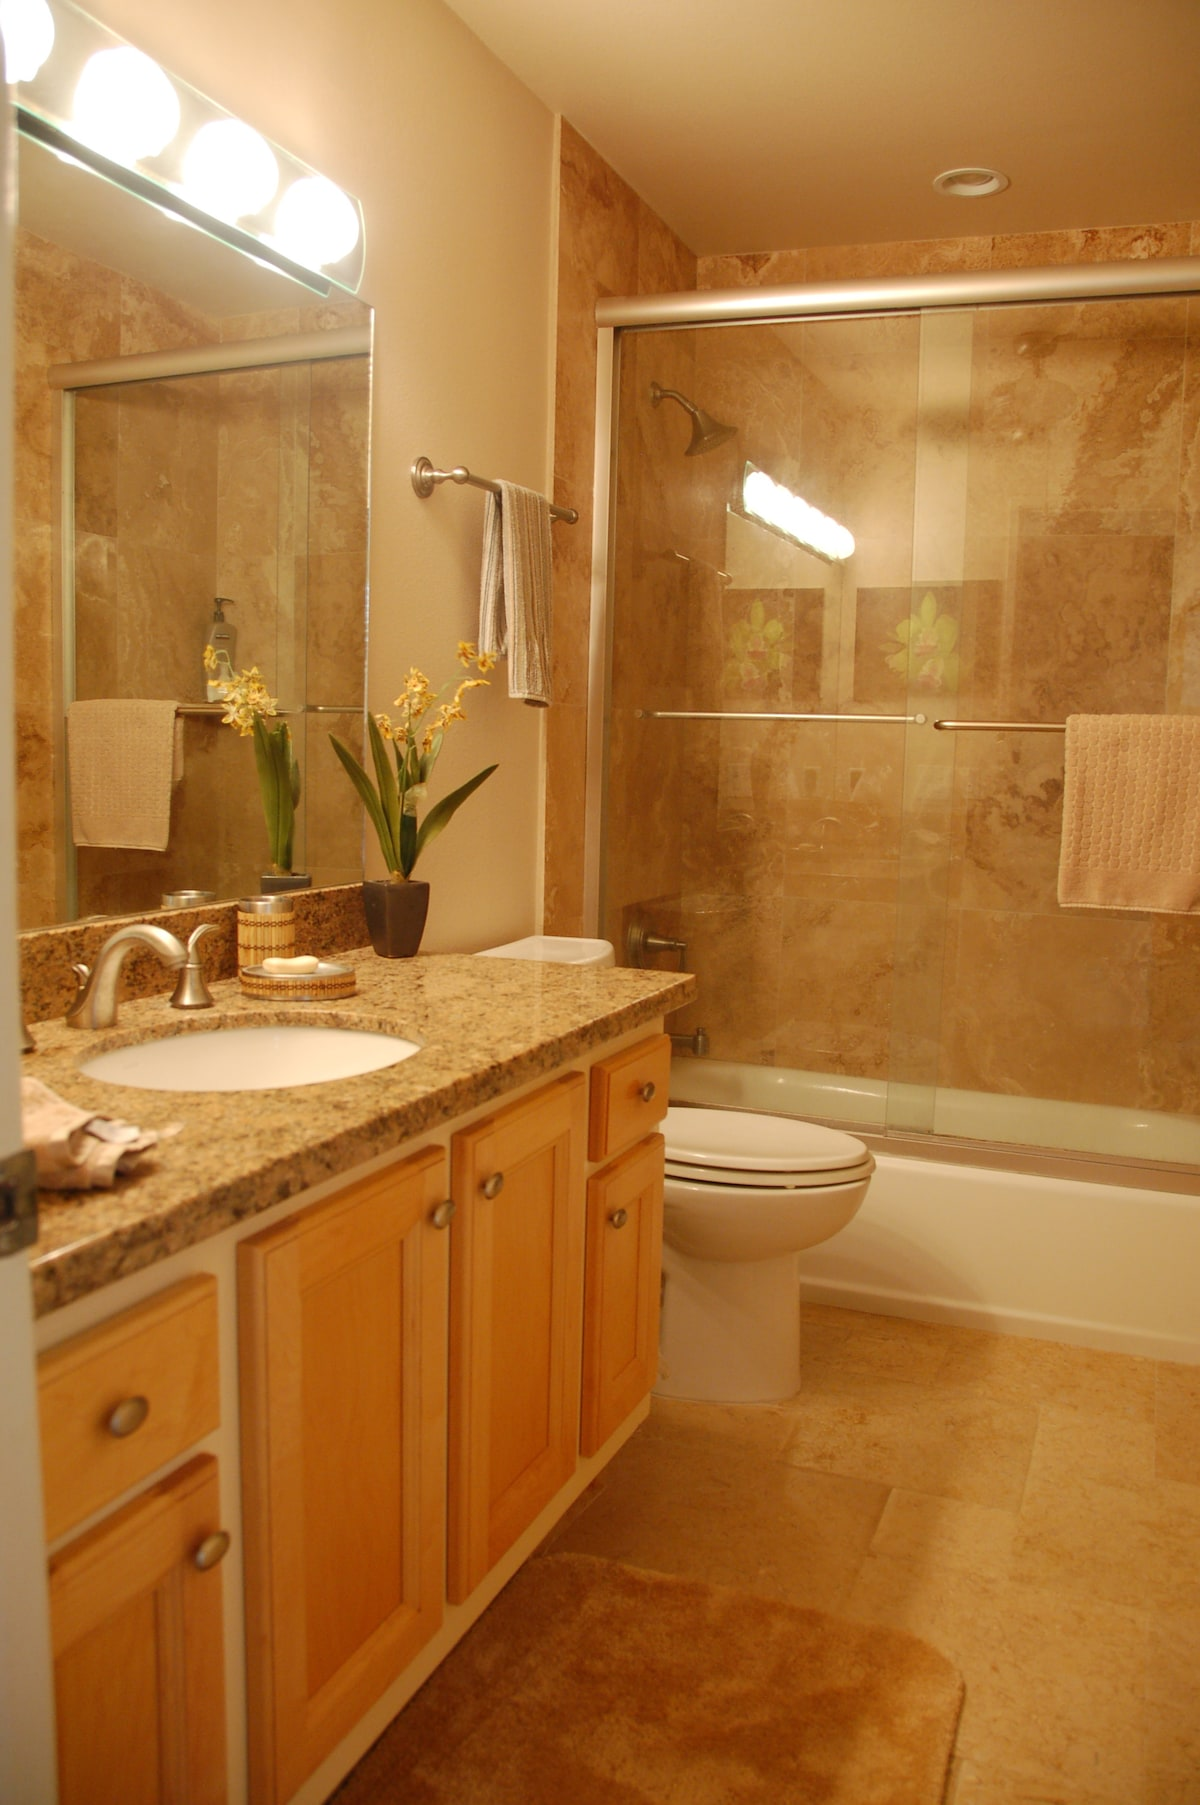 Beautful redone second bathroom with traventine tile and granite counters.